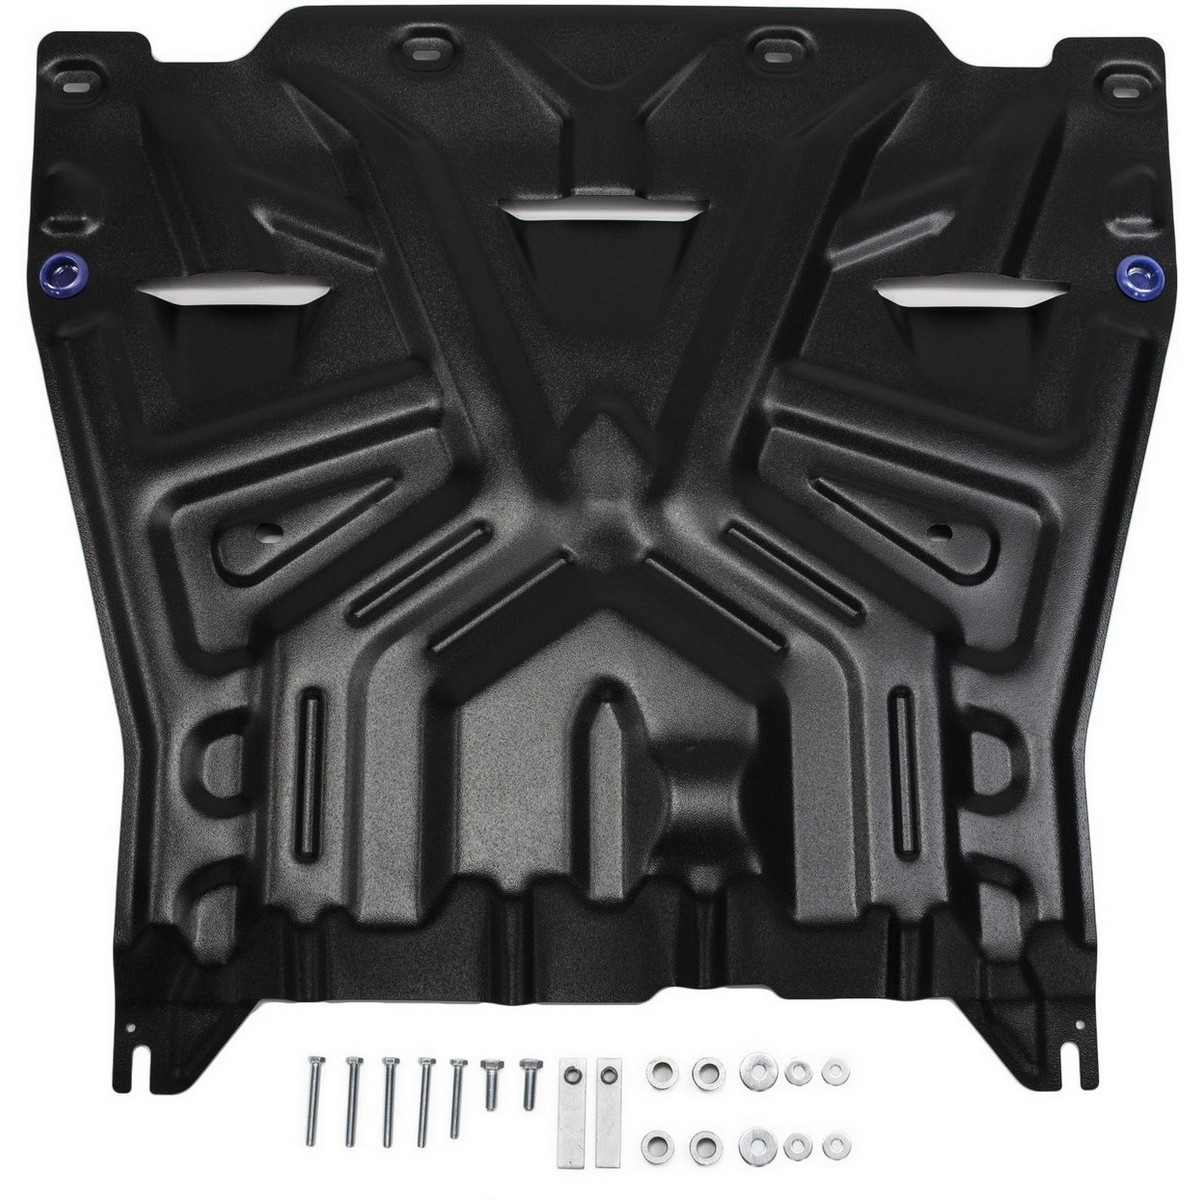 Crankcase and transmission protection Rival 111.2837.1 lokar ats6904ctml 12 tailmount automatic transmission shifter for 904 transmission